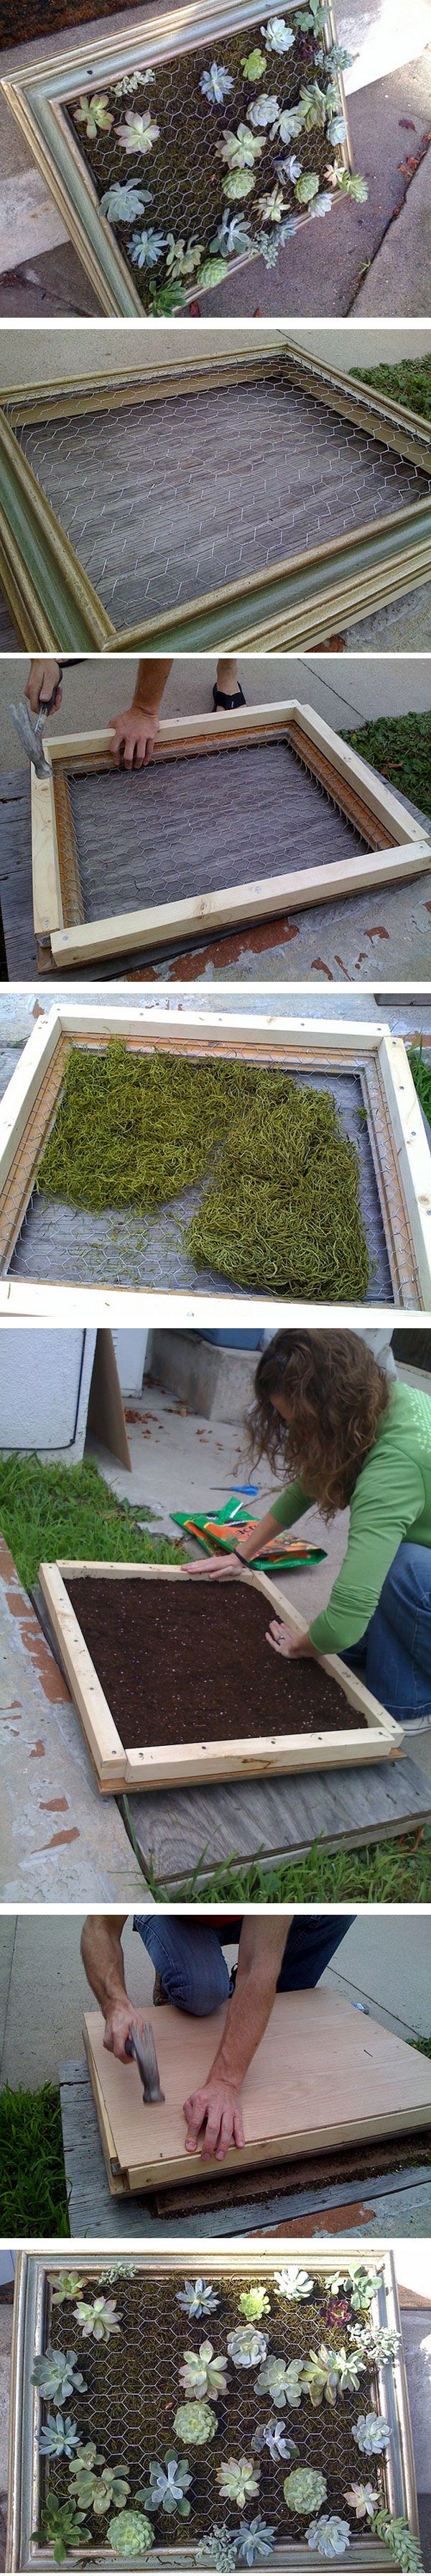 How to on framed succulent planters >> Wonderful! I want to try this!